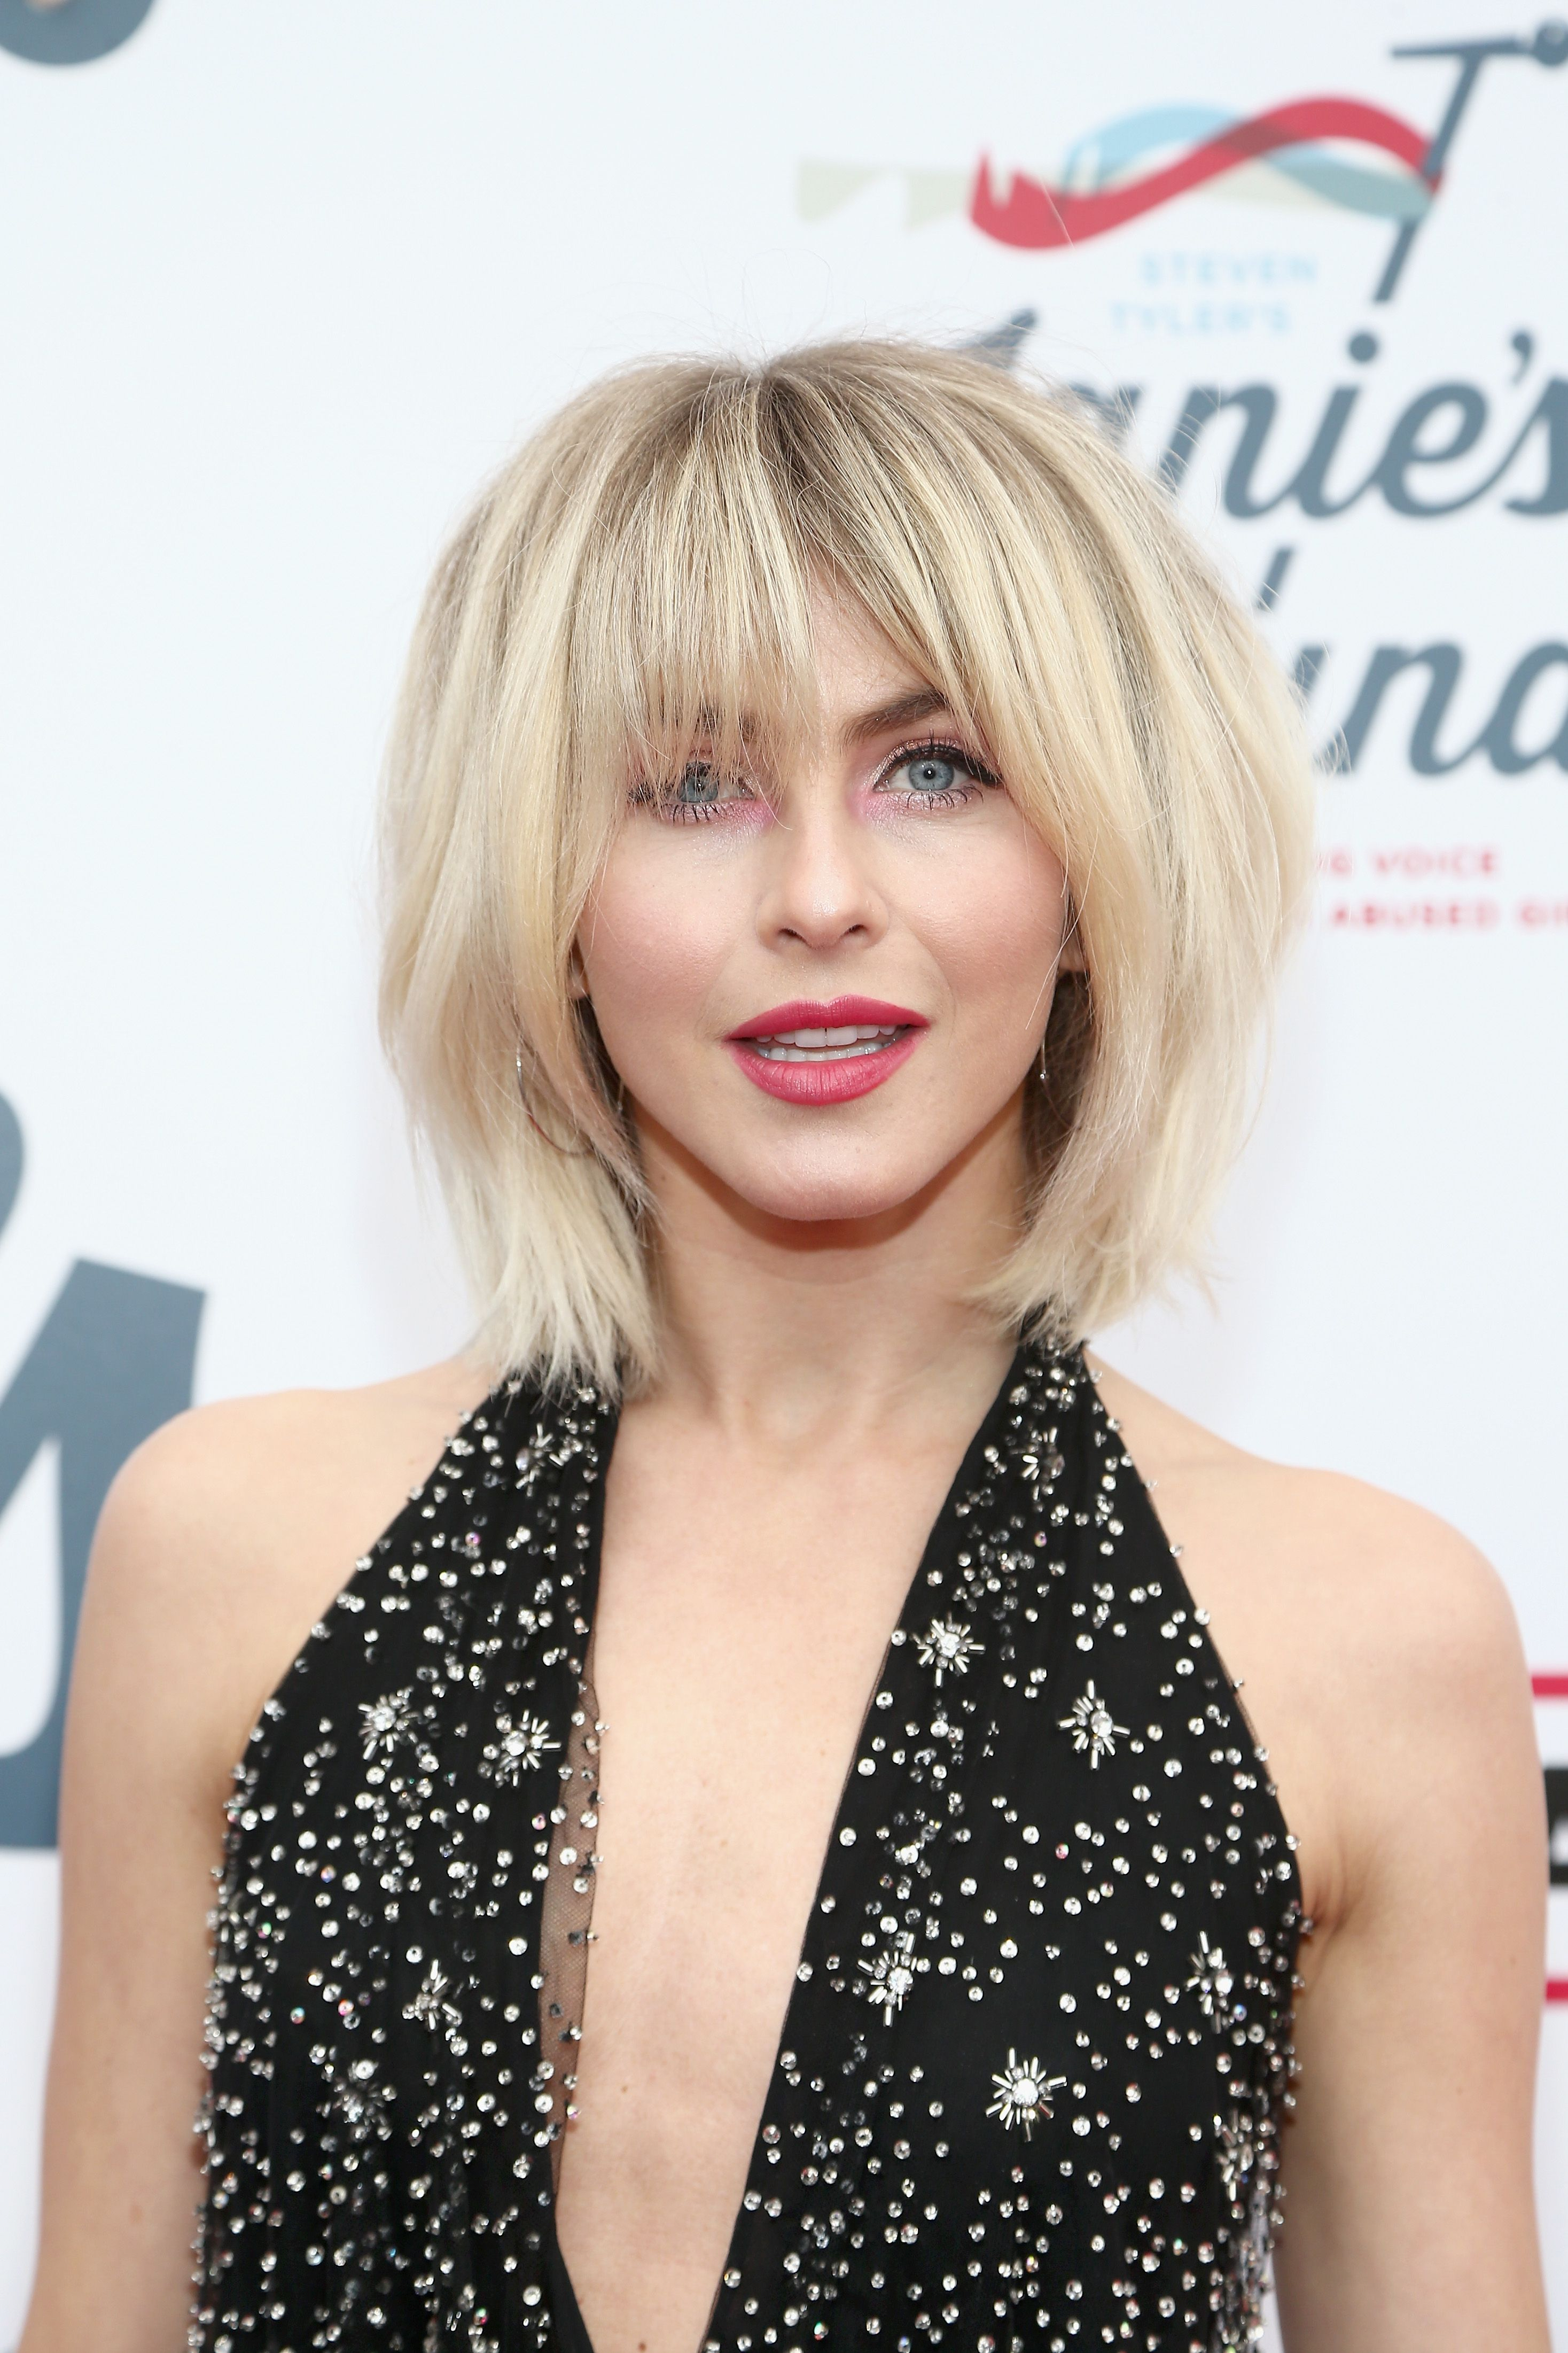 40 Best Hairstyles With Bangs , Photos of Celebrity Haircuts